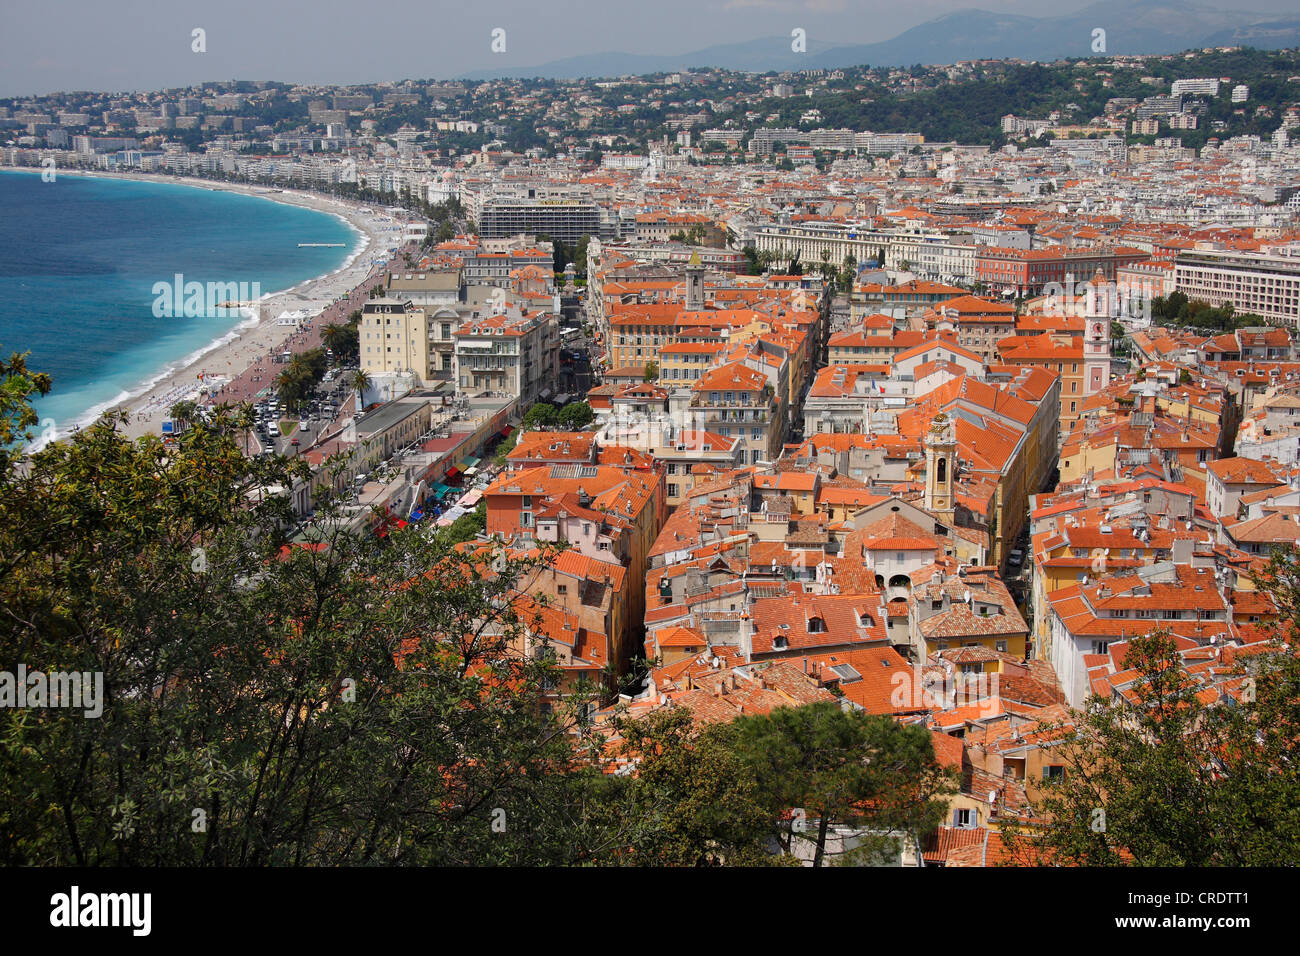 view of Nizza, France - Stock Image